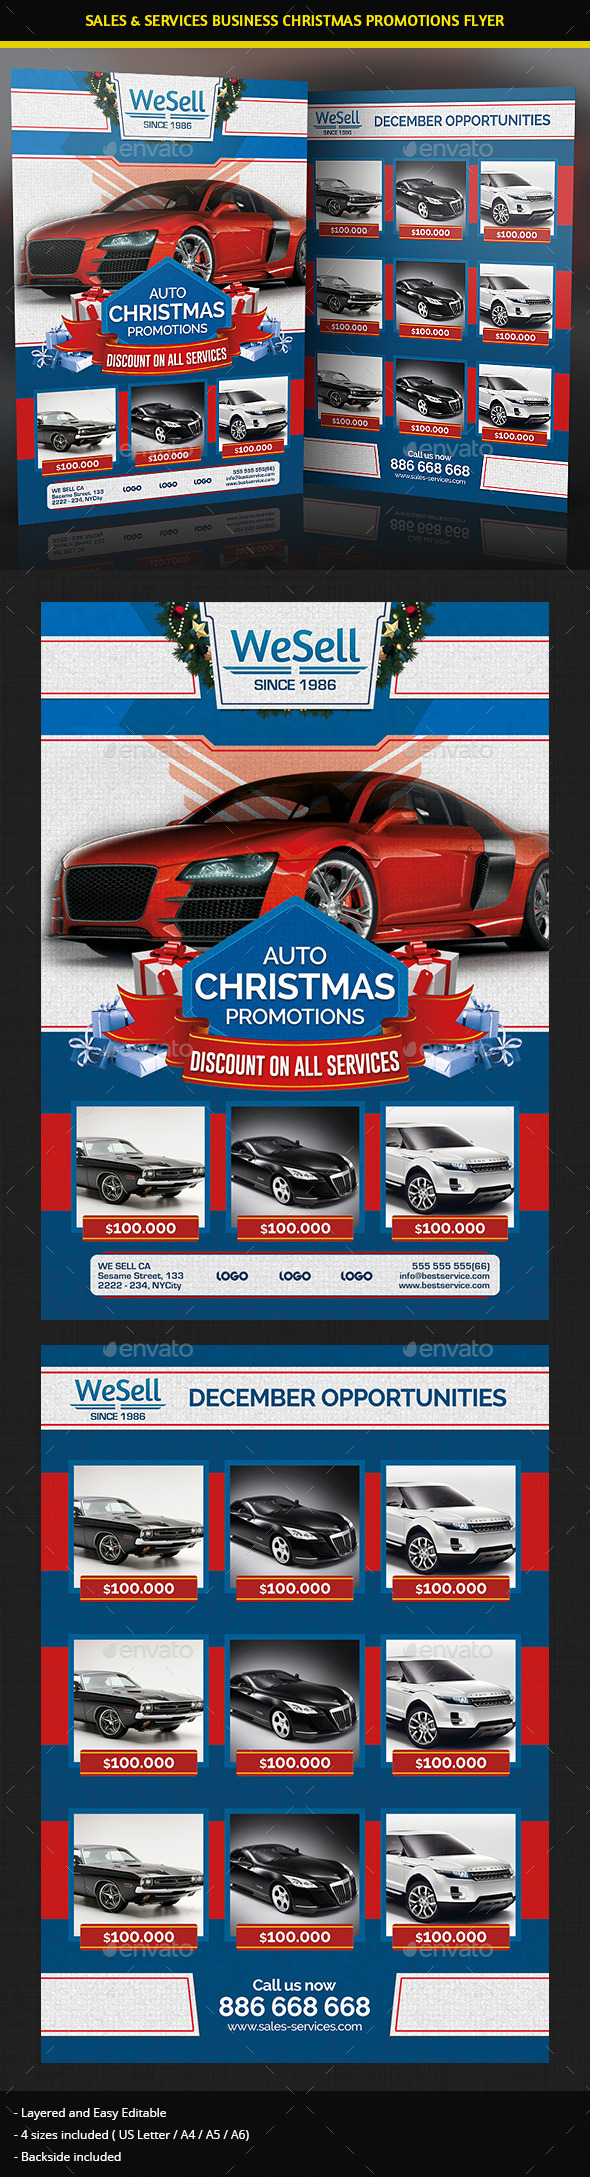 Sales and Services Christmas Promotions Flyer - Commerce Flyers